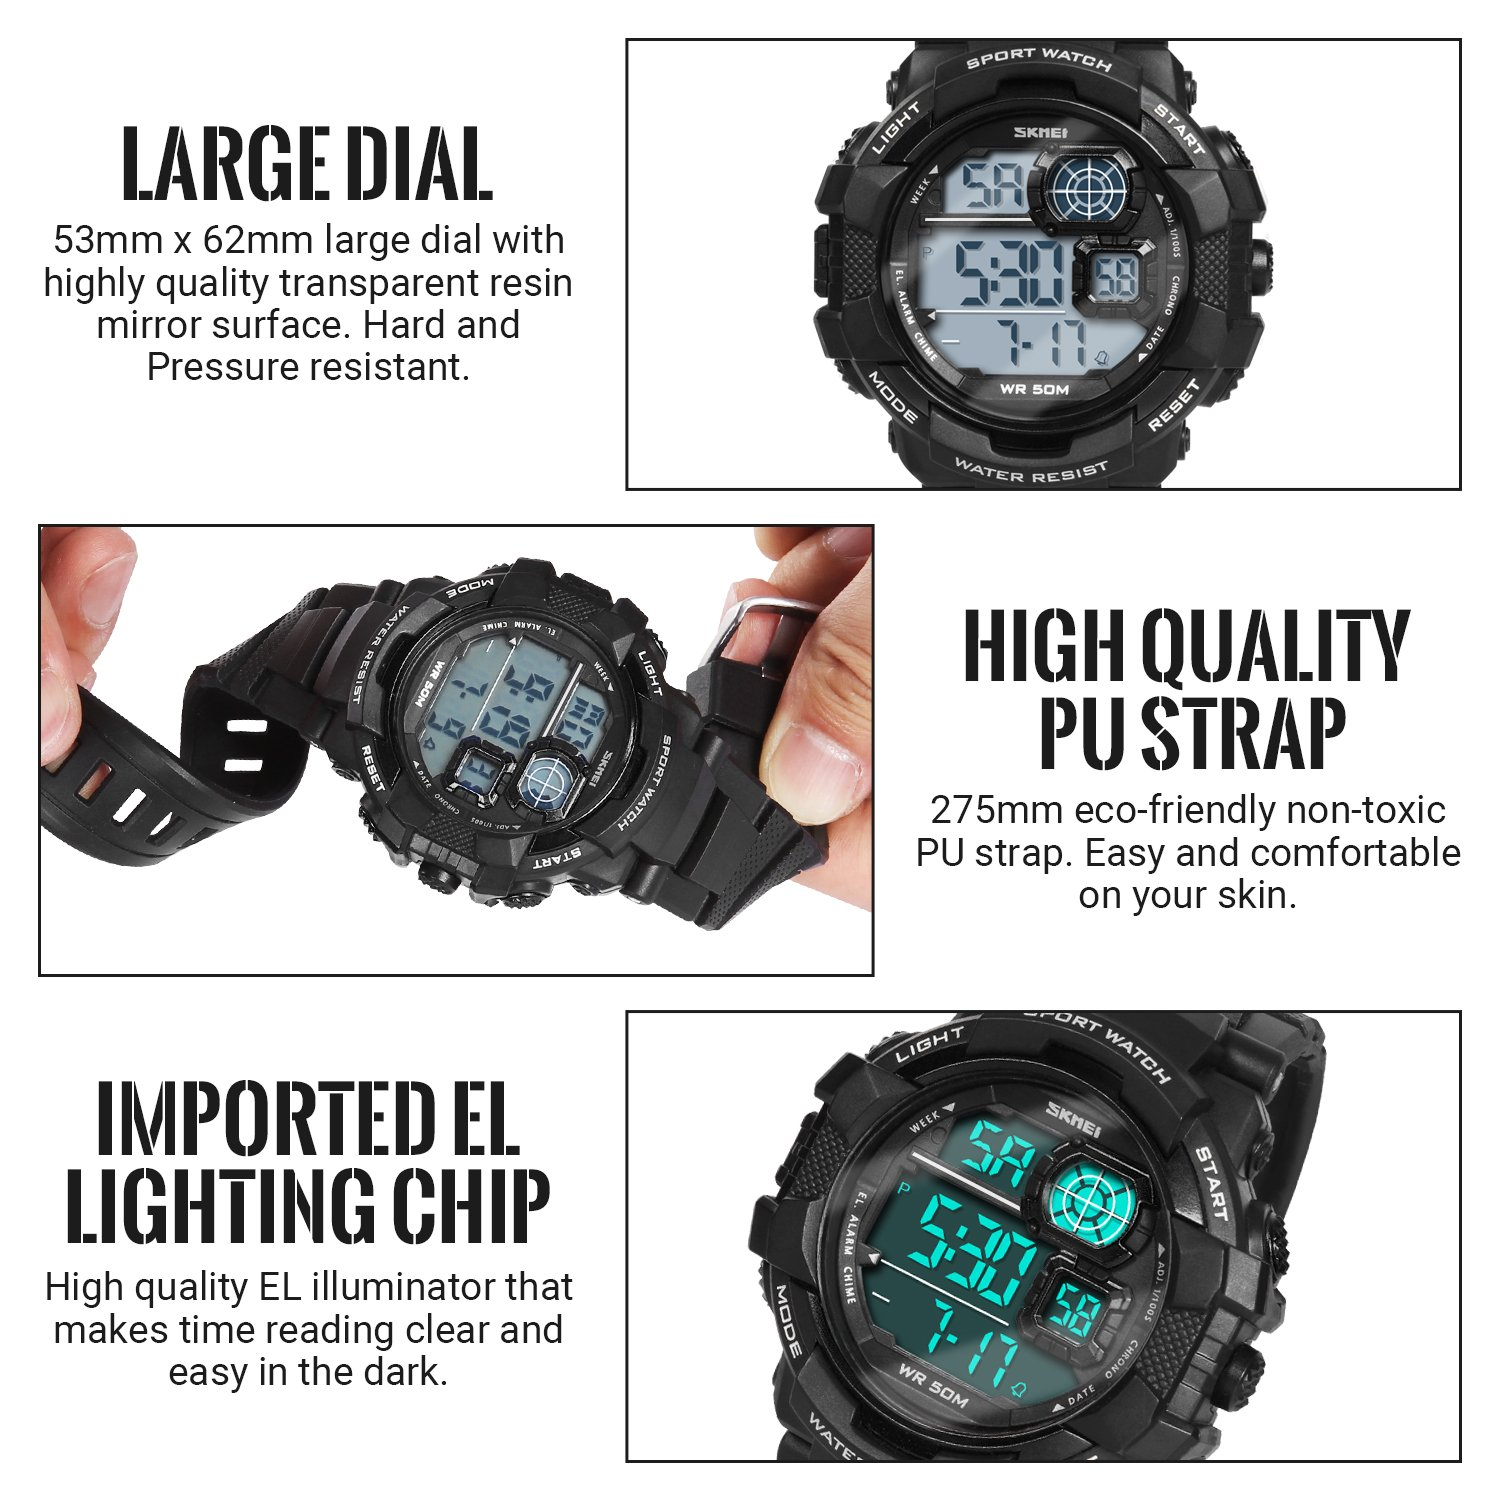 HIwatch Men's Sport Watches LED Military Watches and 50M Waterproof Casual Luminous Stopwatch Alarm Simple Army Watch, Electronic Analog Quartz Watches for Youth Students Gift, Black by Hi Watch (Image #5)